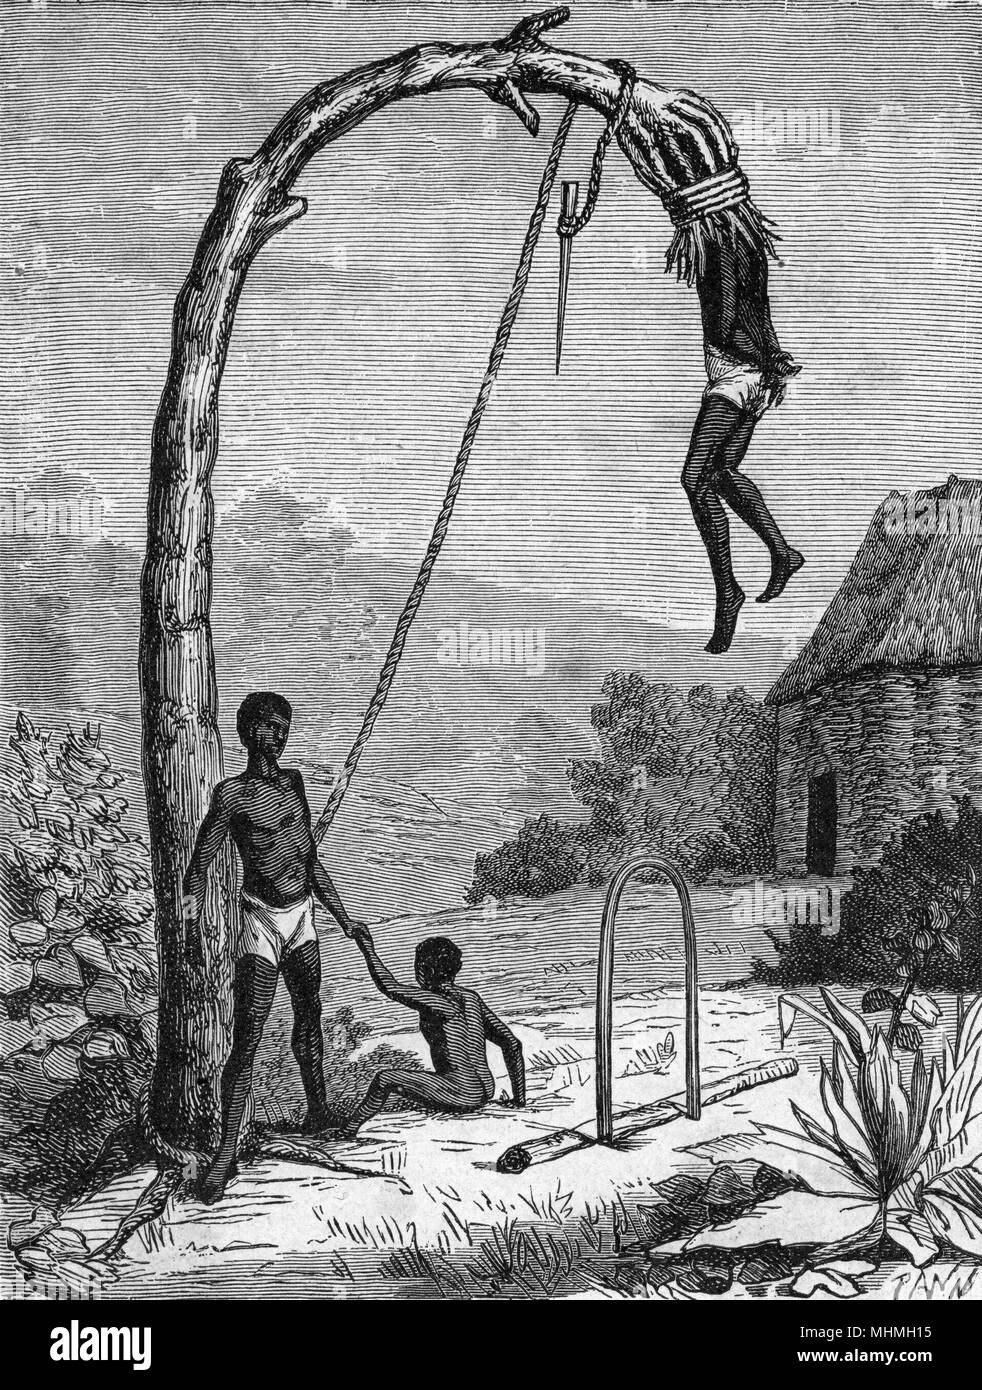 Dahomey : a parricide is tied to a tree and left to die, a slow and uncomfortable process       Date: 1905 - Stock Image